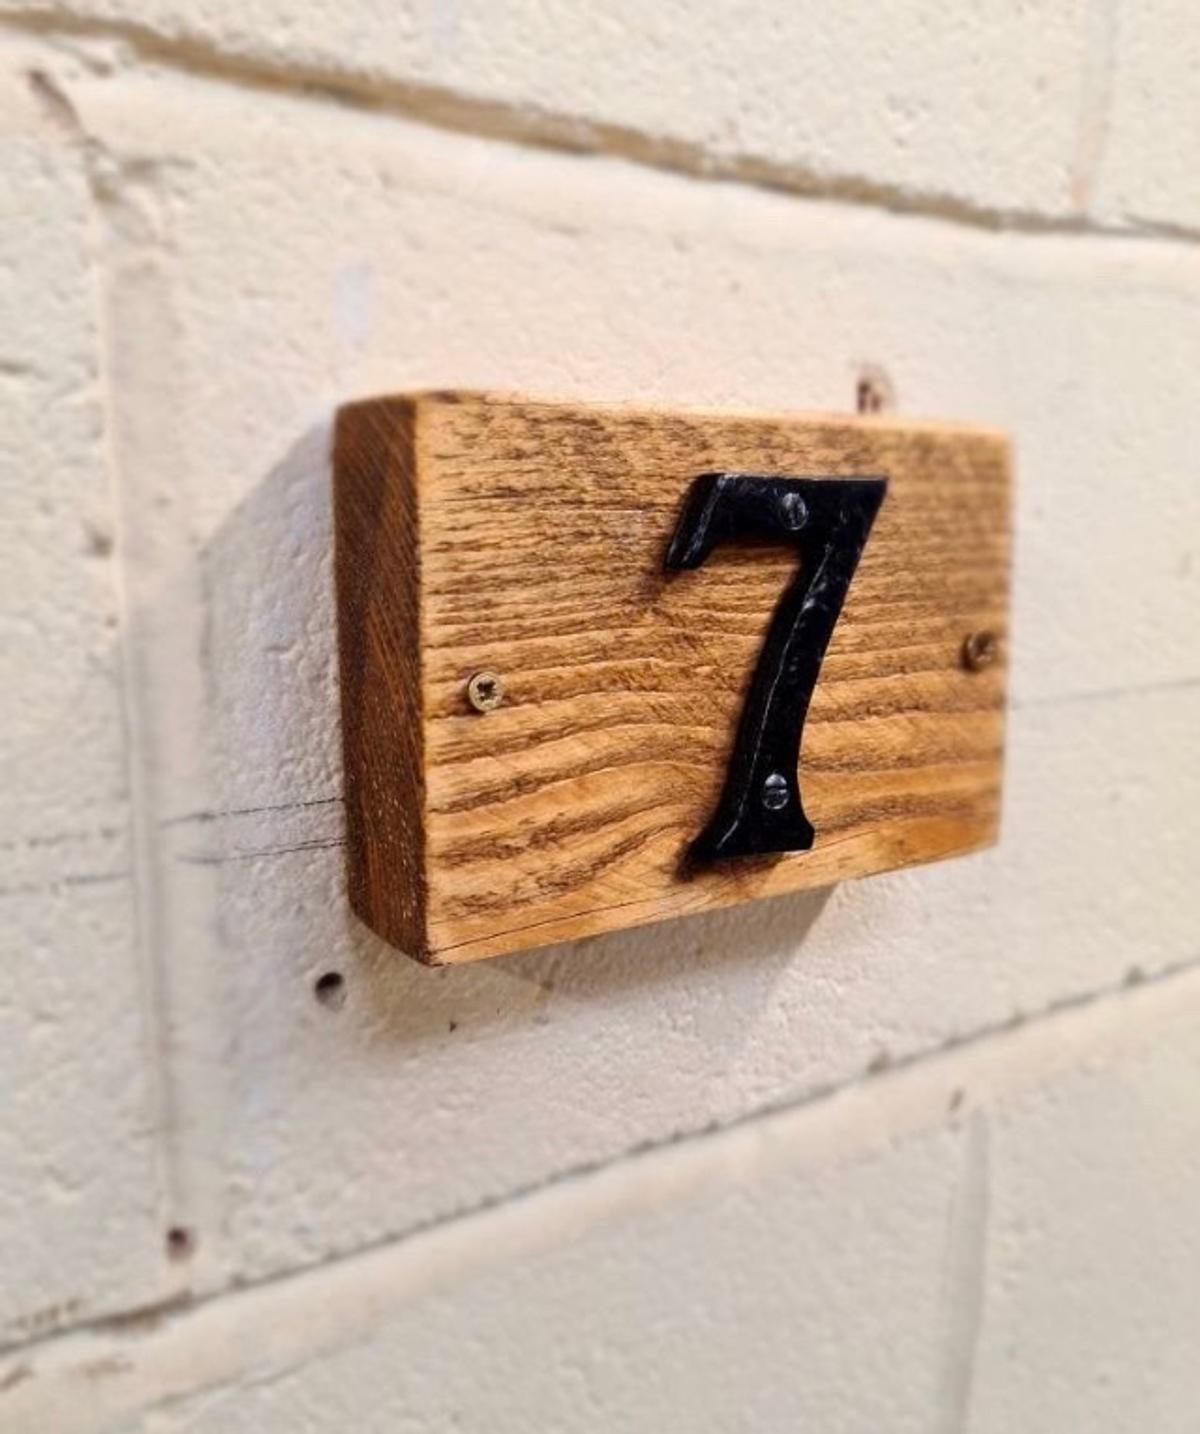 Solid chunky wood door numbers Choice of wax finishes Choice of black or chrome coloured numbers £6 for a single number £10 for double numbers £13 for 3 numbers